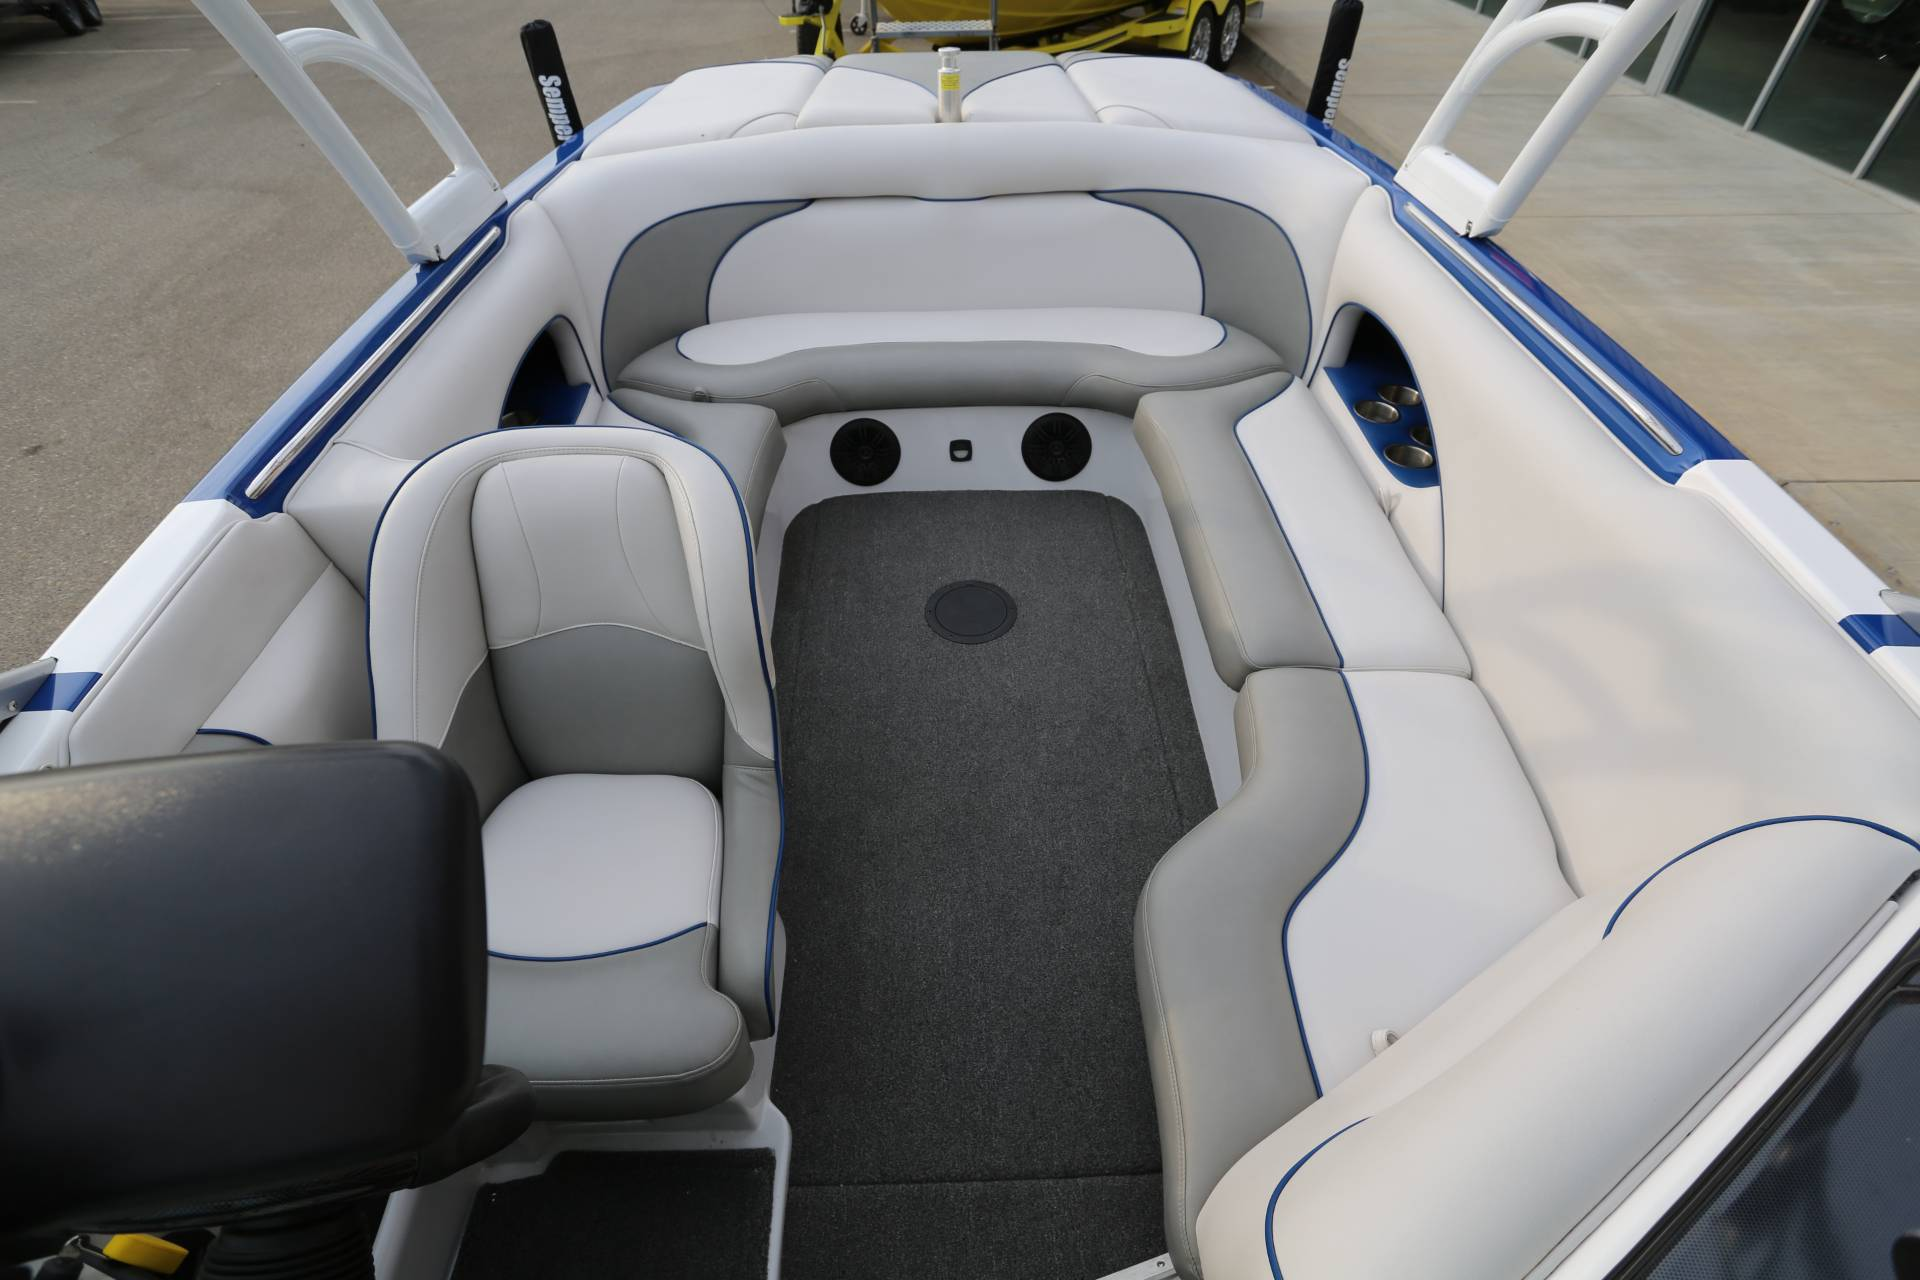 2013 Sanger Boats V215 S in Madera, California - Photo 22